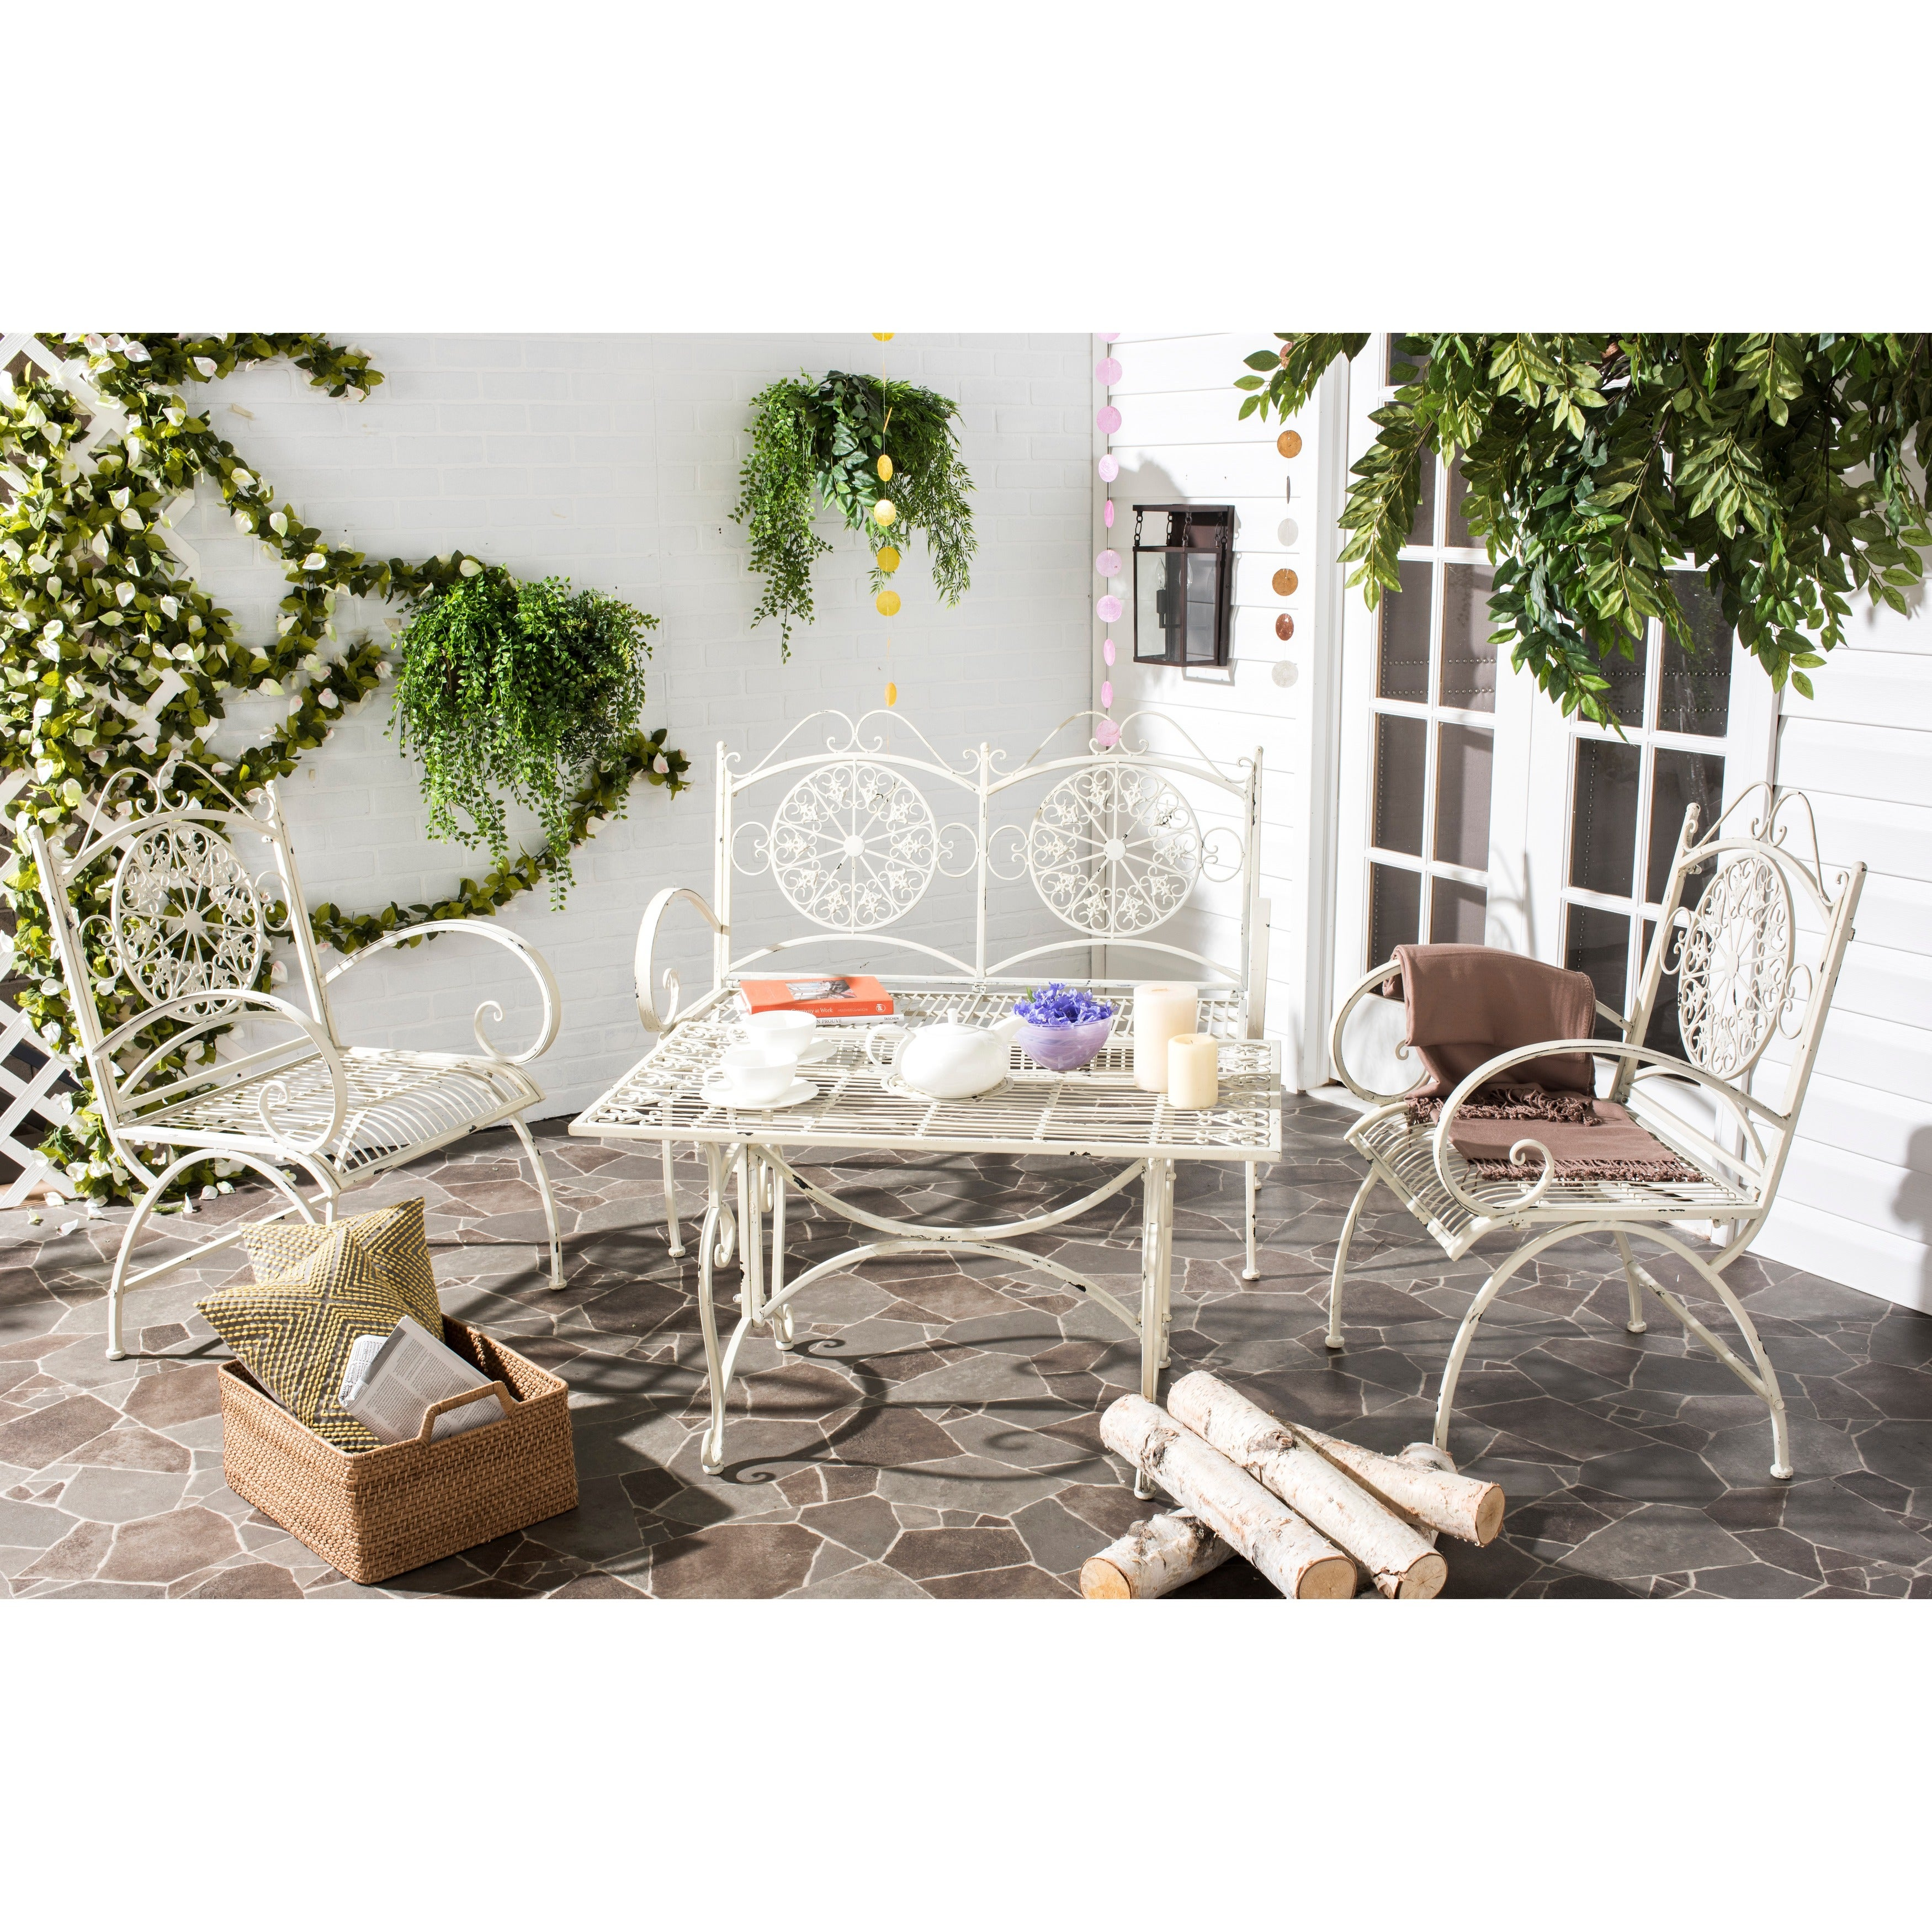 Shop Safavieh Outdoor Living Rustic Sophie Antique White Iron Patio Set  (4 Piece)   Free Shipping Today   Overstock.com   10300216